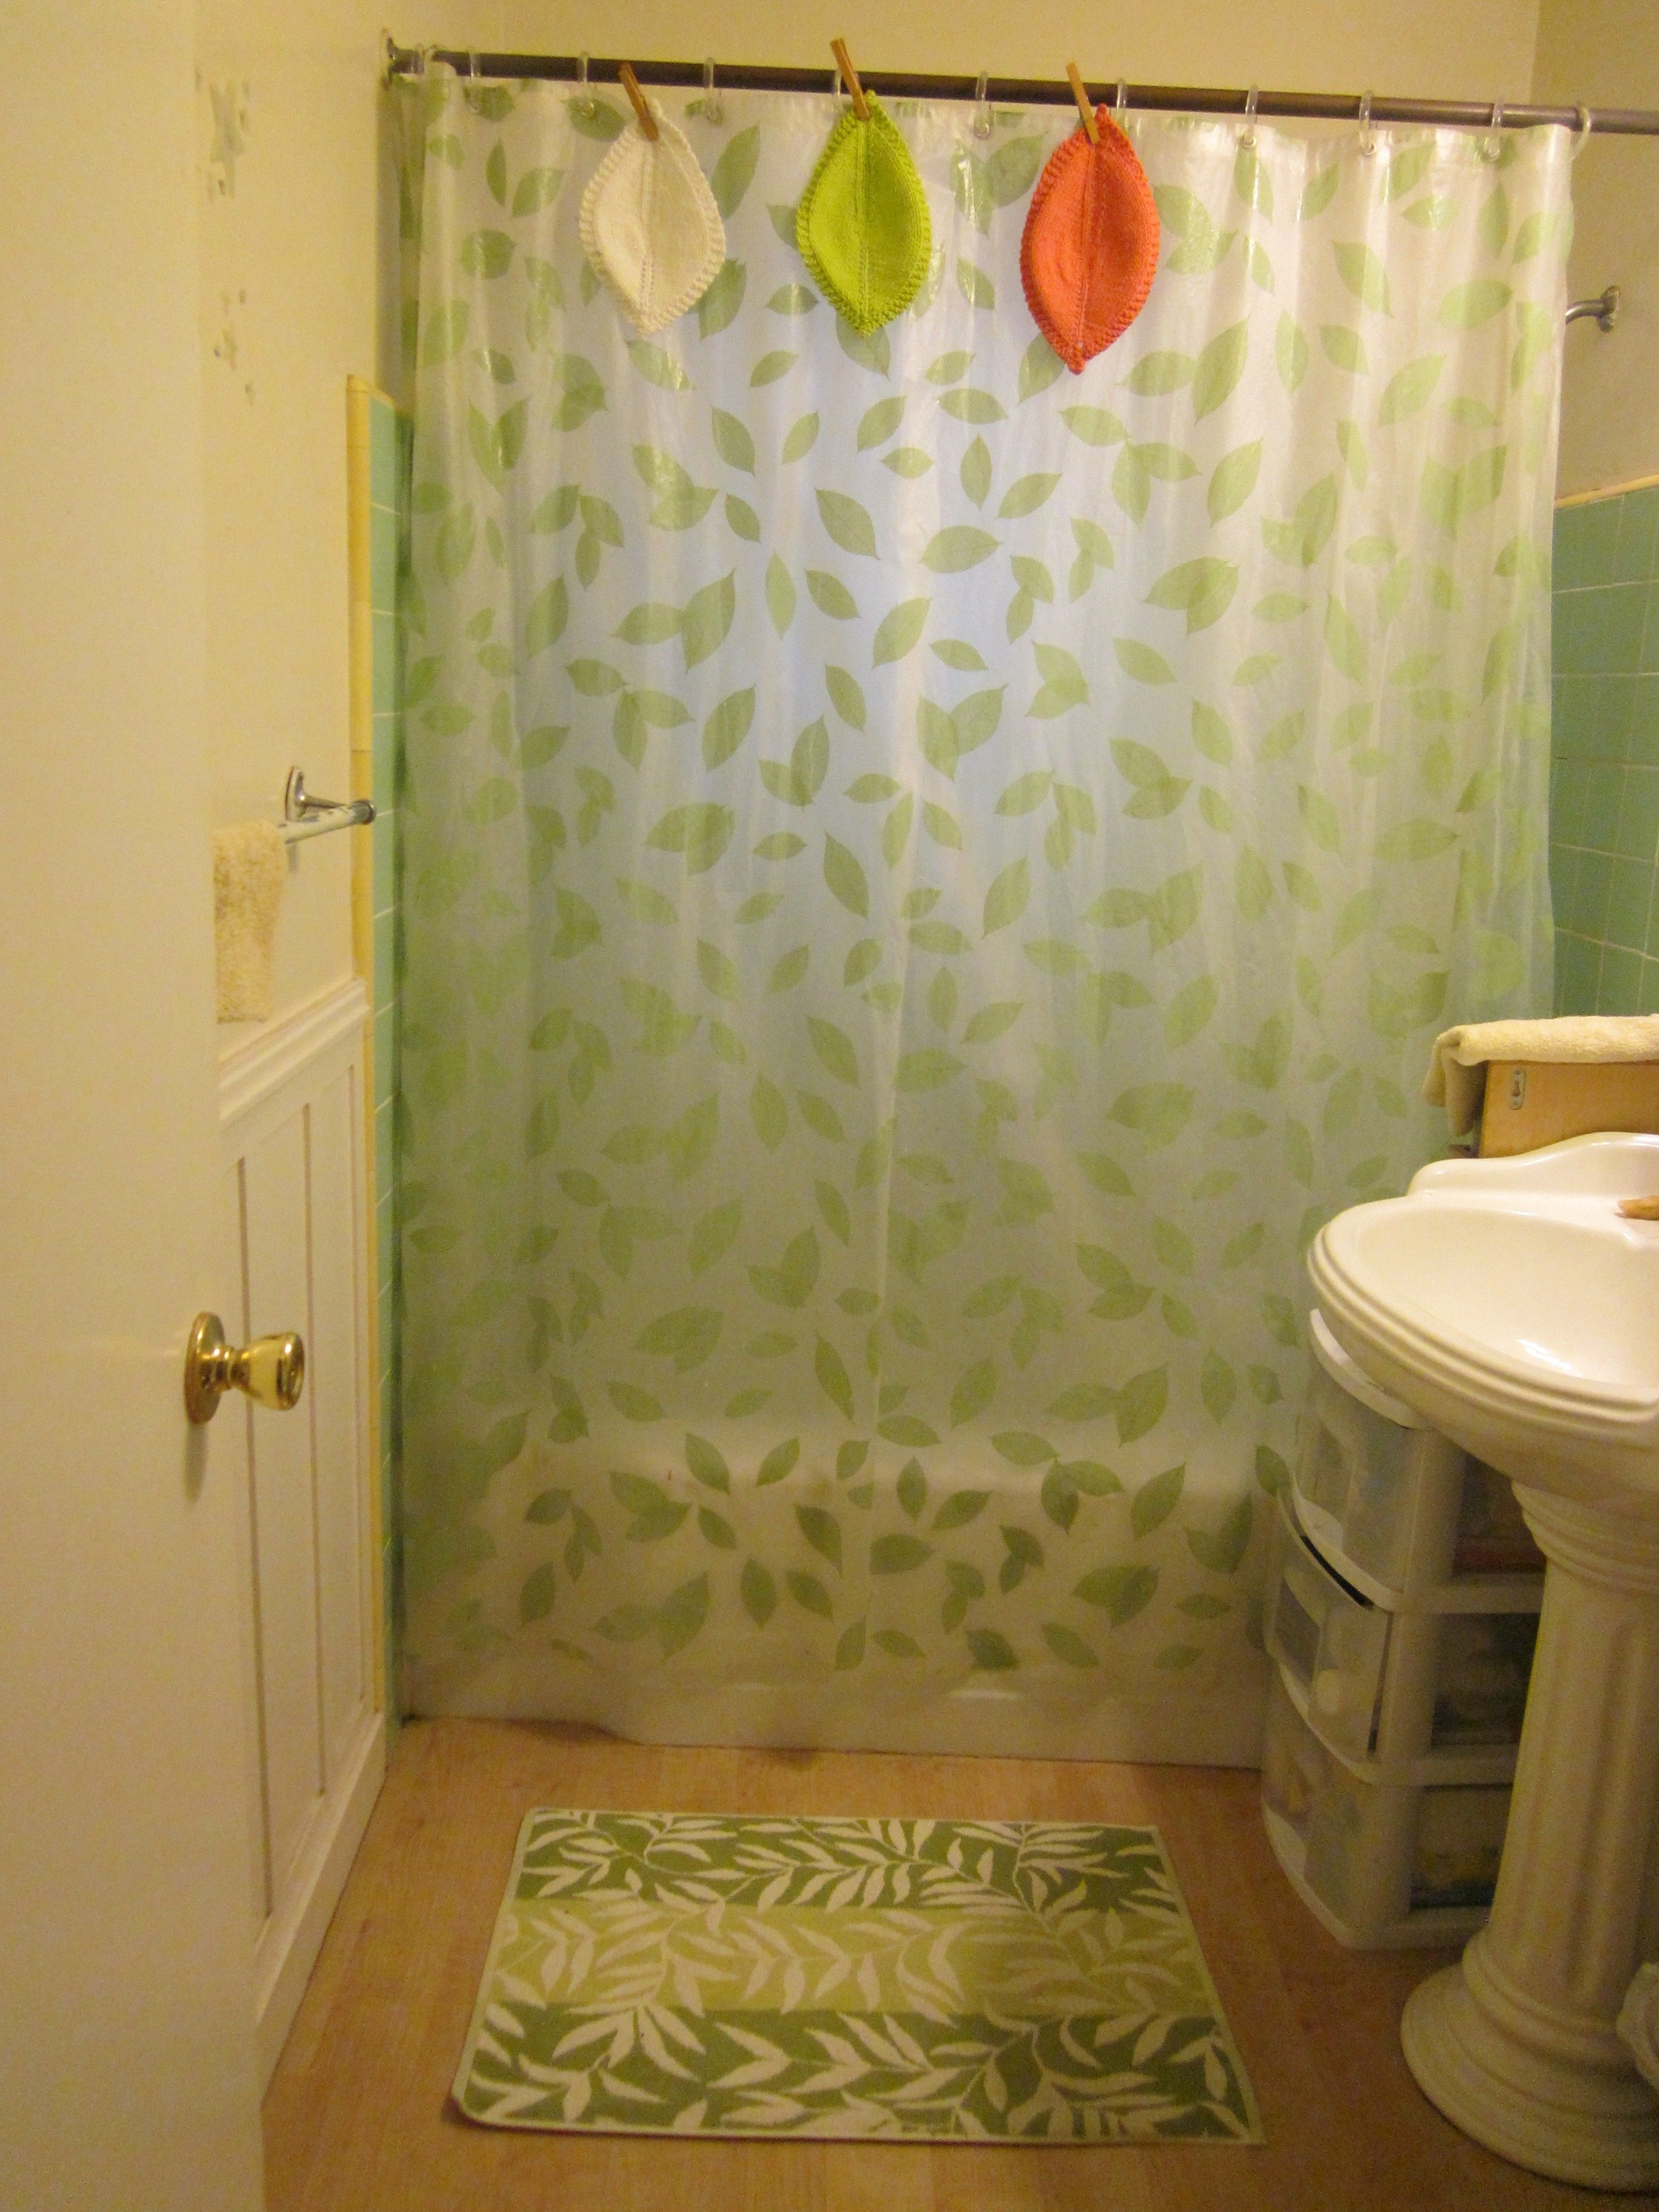 Bed bath and beyond shower curtains you can find out more details